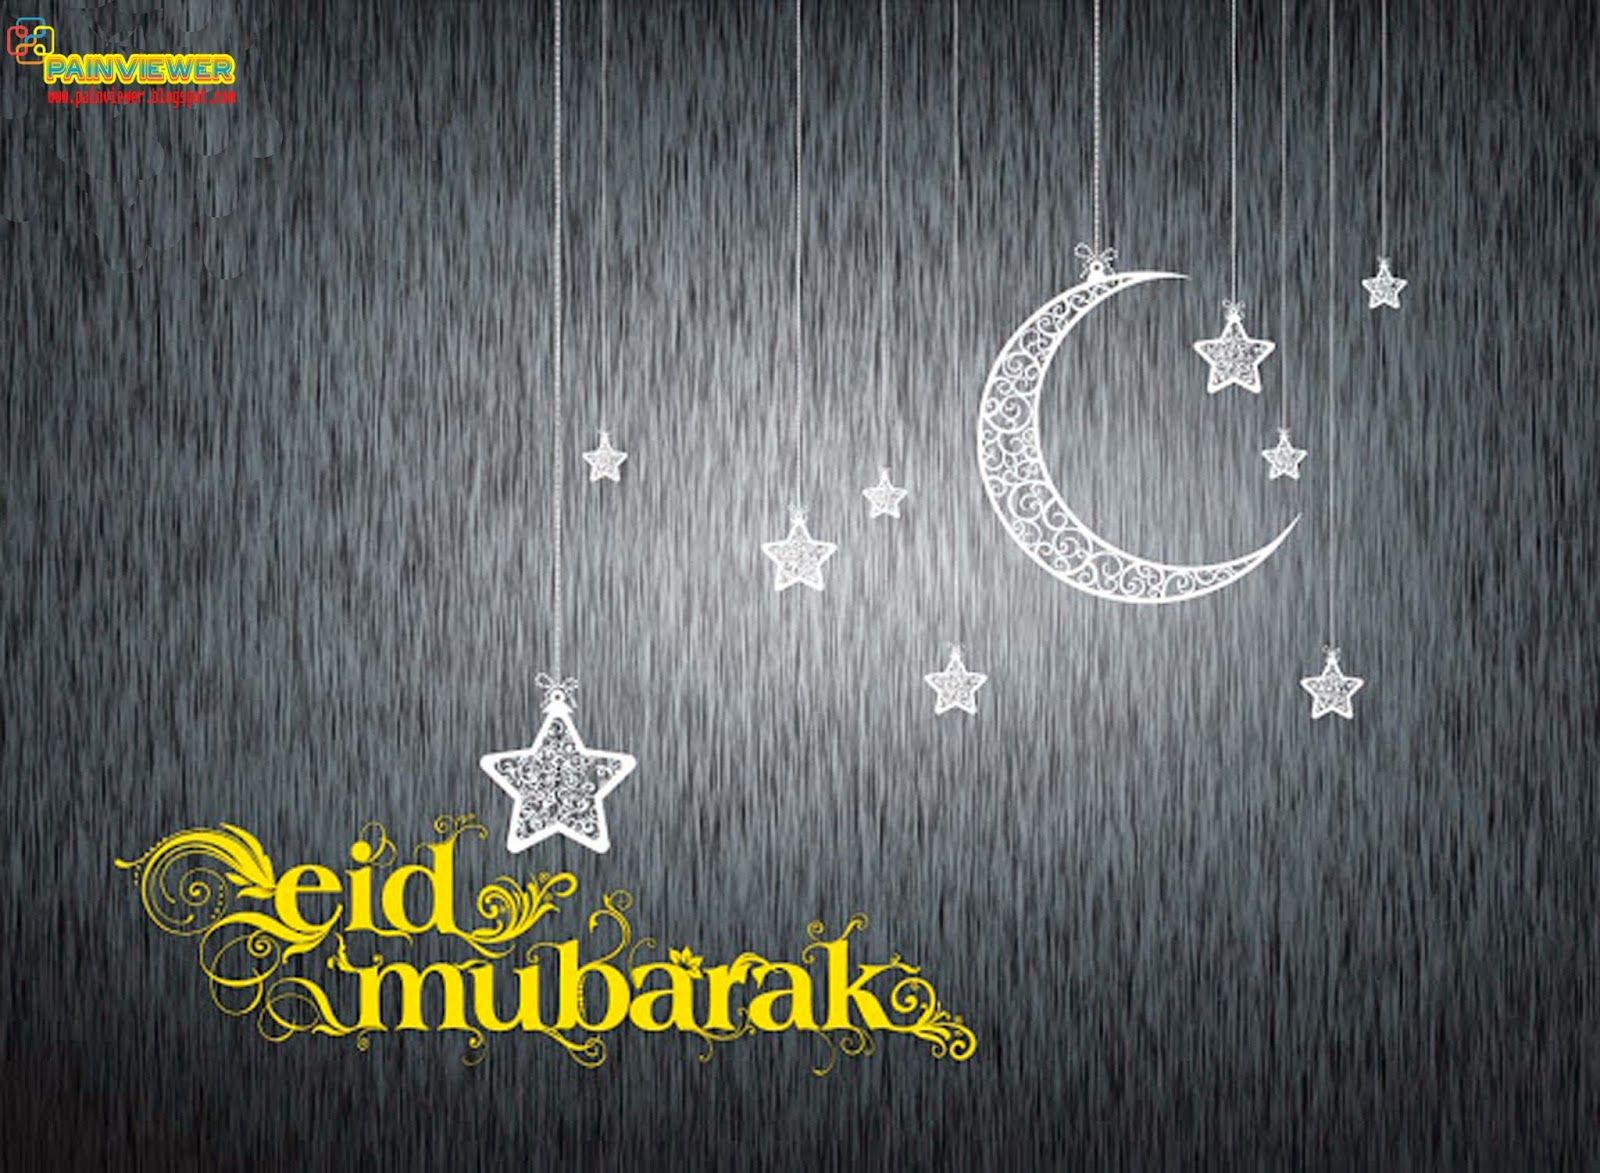 Happy eid ul fitar latest new hd wallpaper 2014 painviewer eid happy eid ul fitar latest new hd wallpaper 2014 painviewer kristyandbryce Image collections